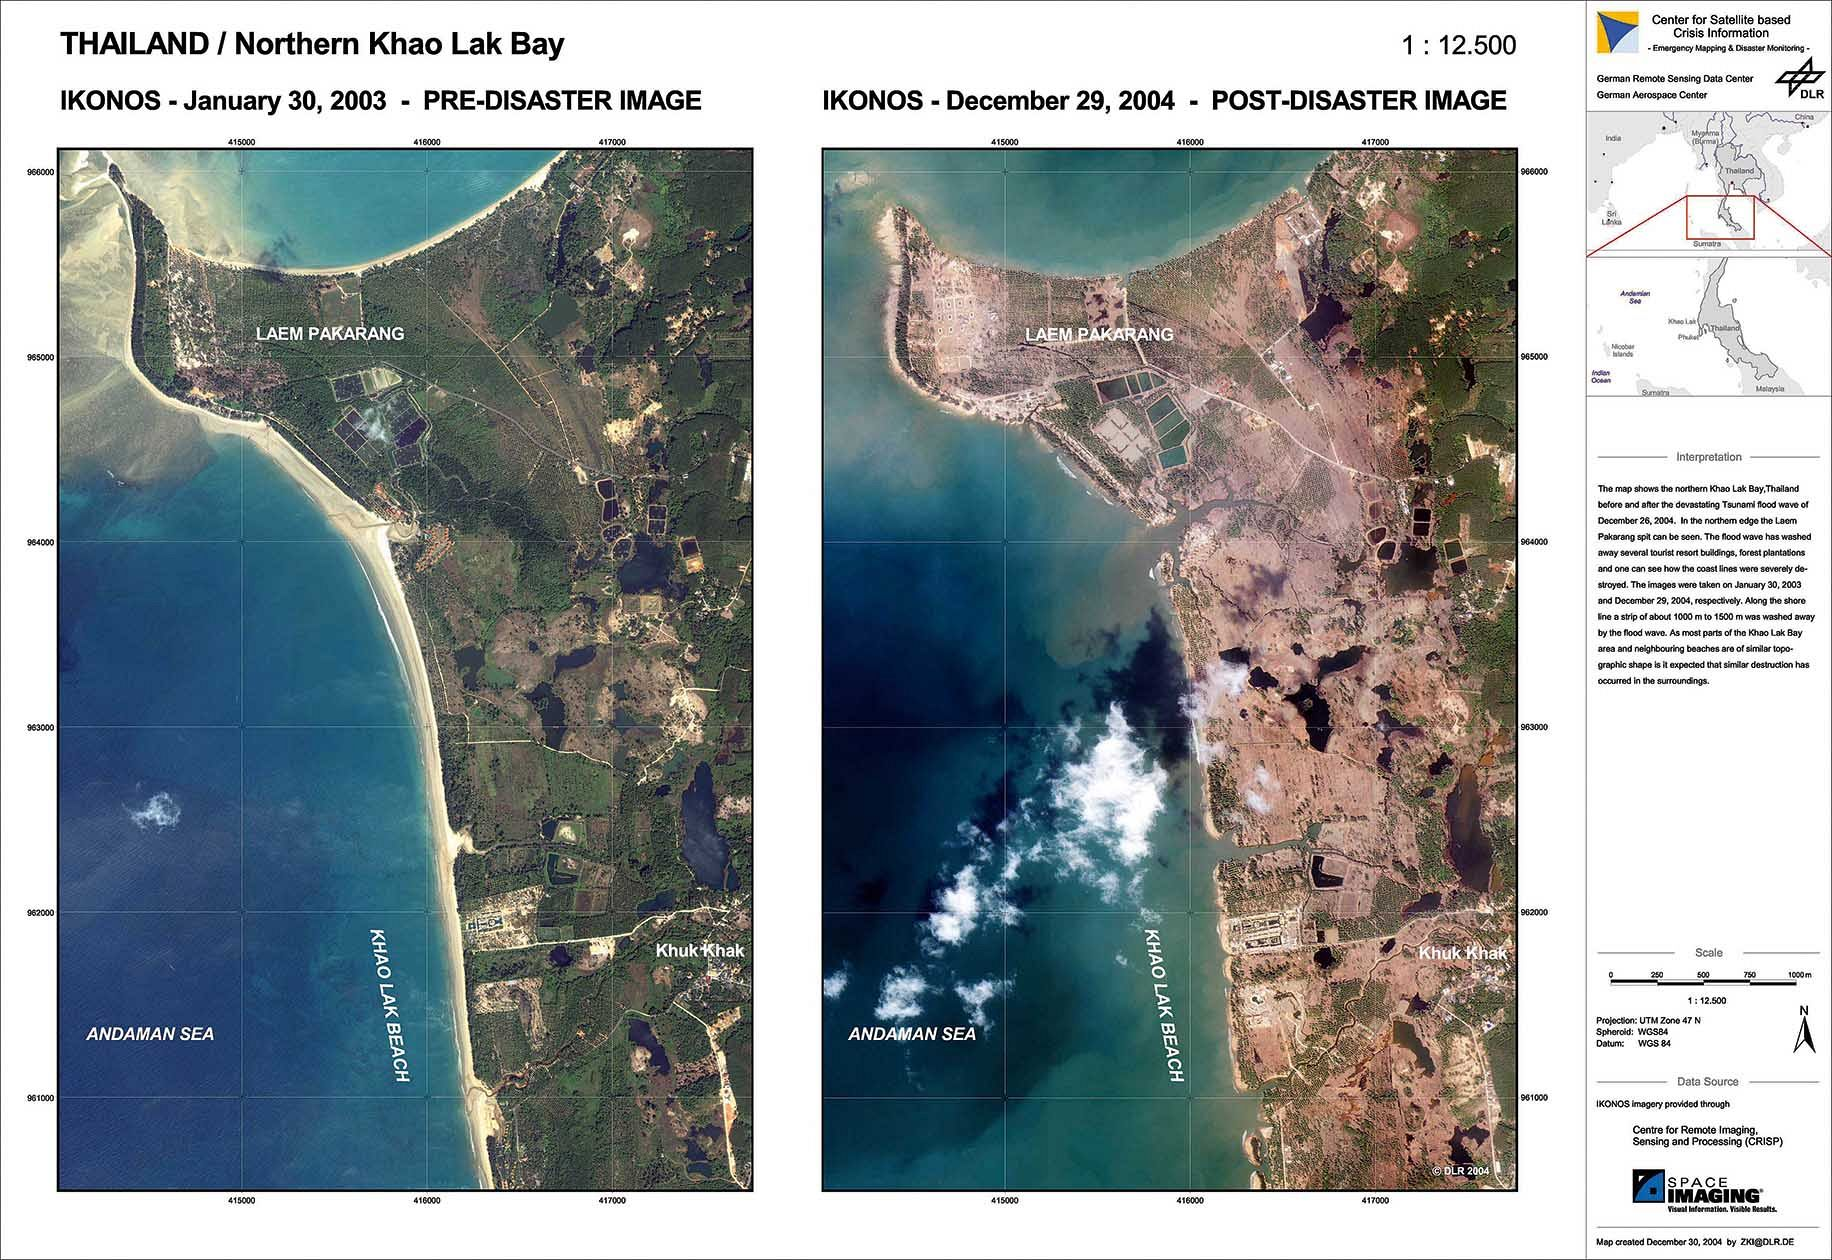 Khao Lak, Thailand before and after the tsunami in 2004. _Photo: German Remote Sensing Data Centre, DLR._